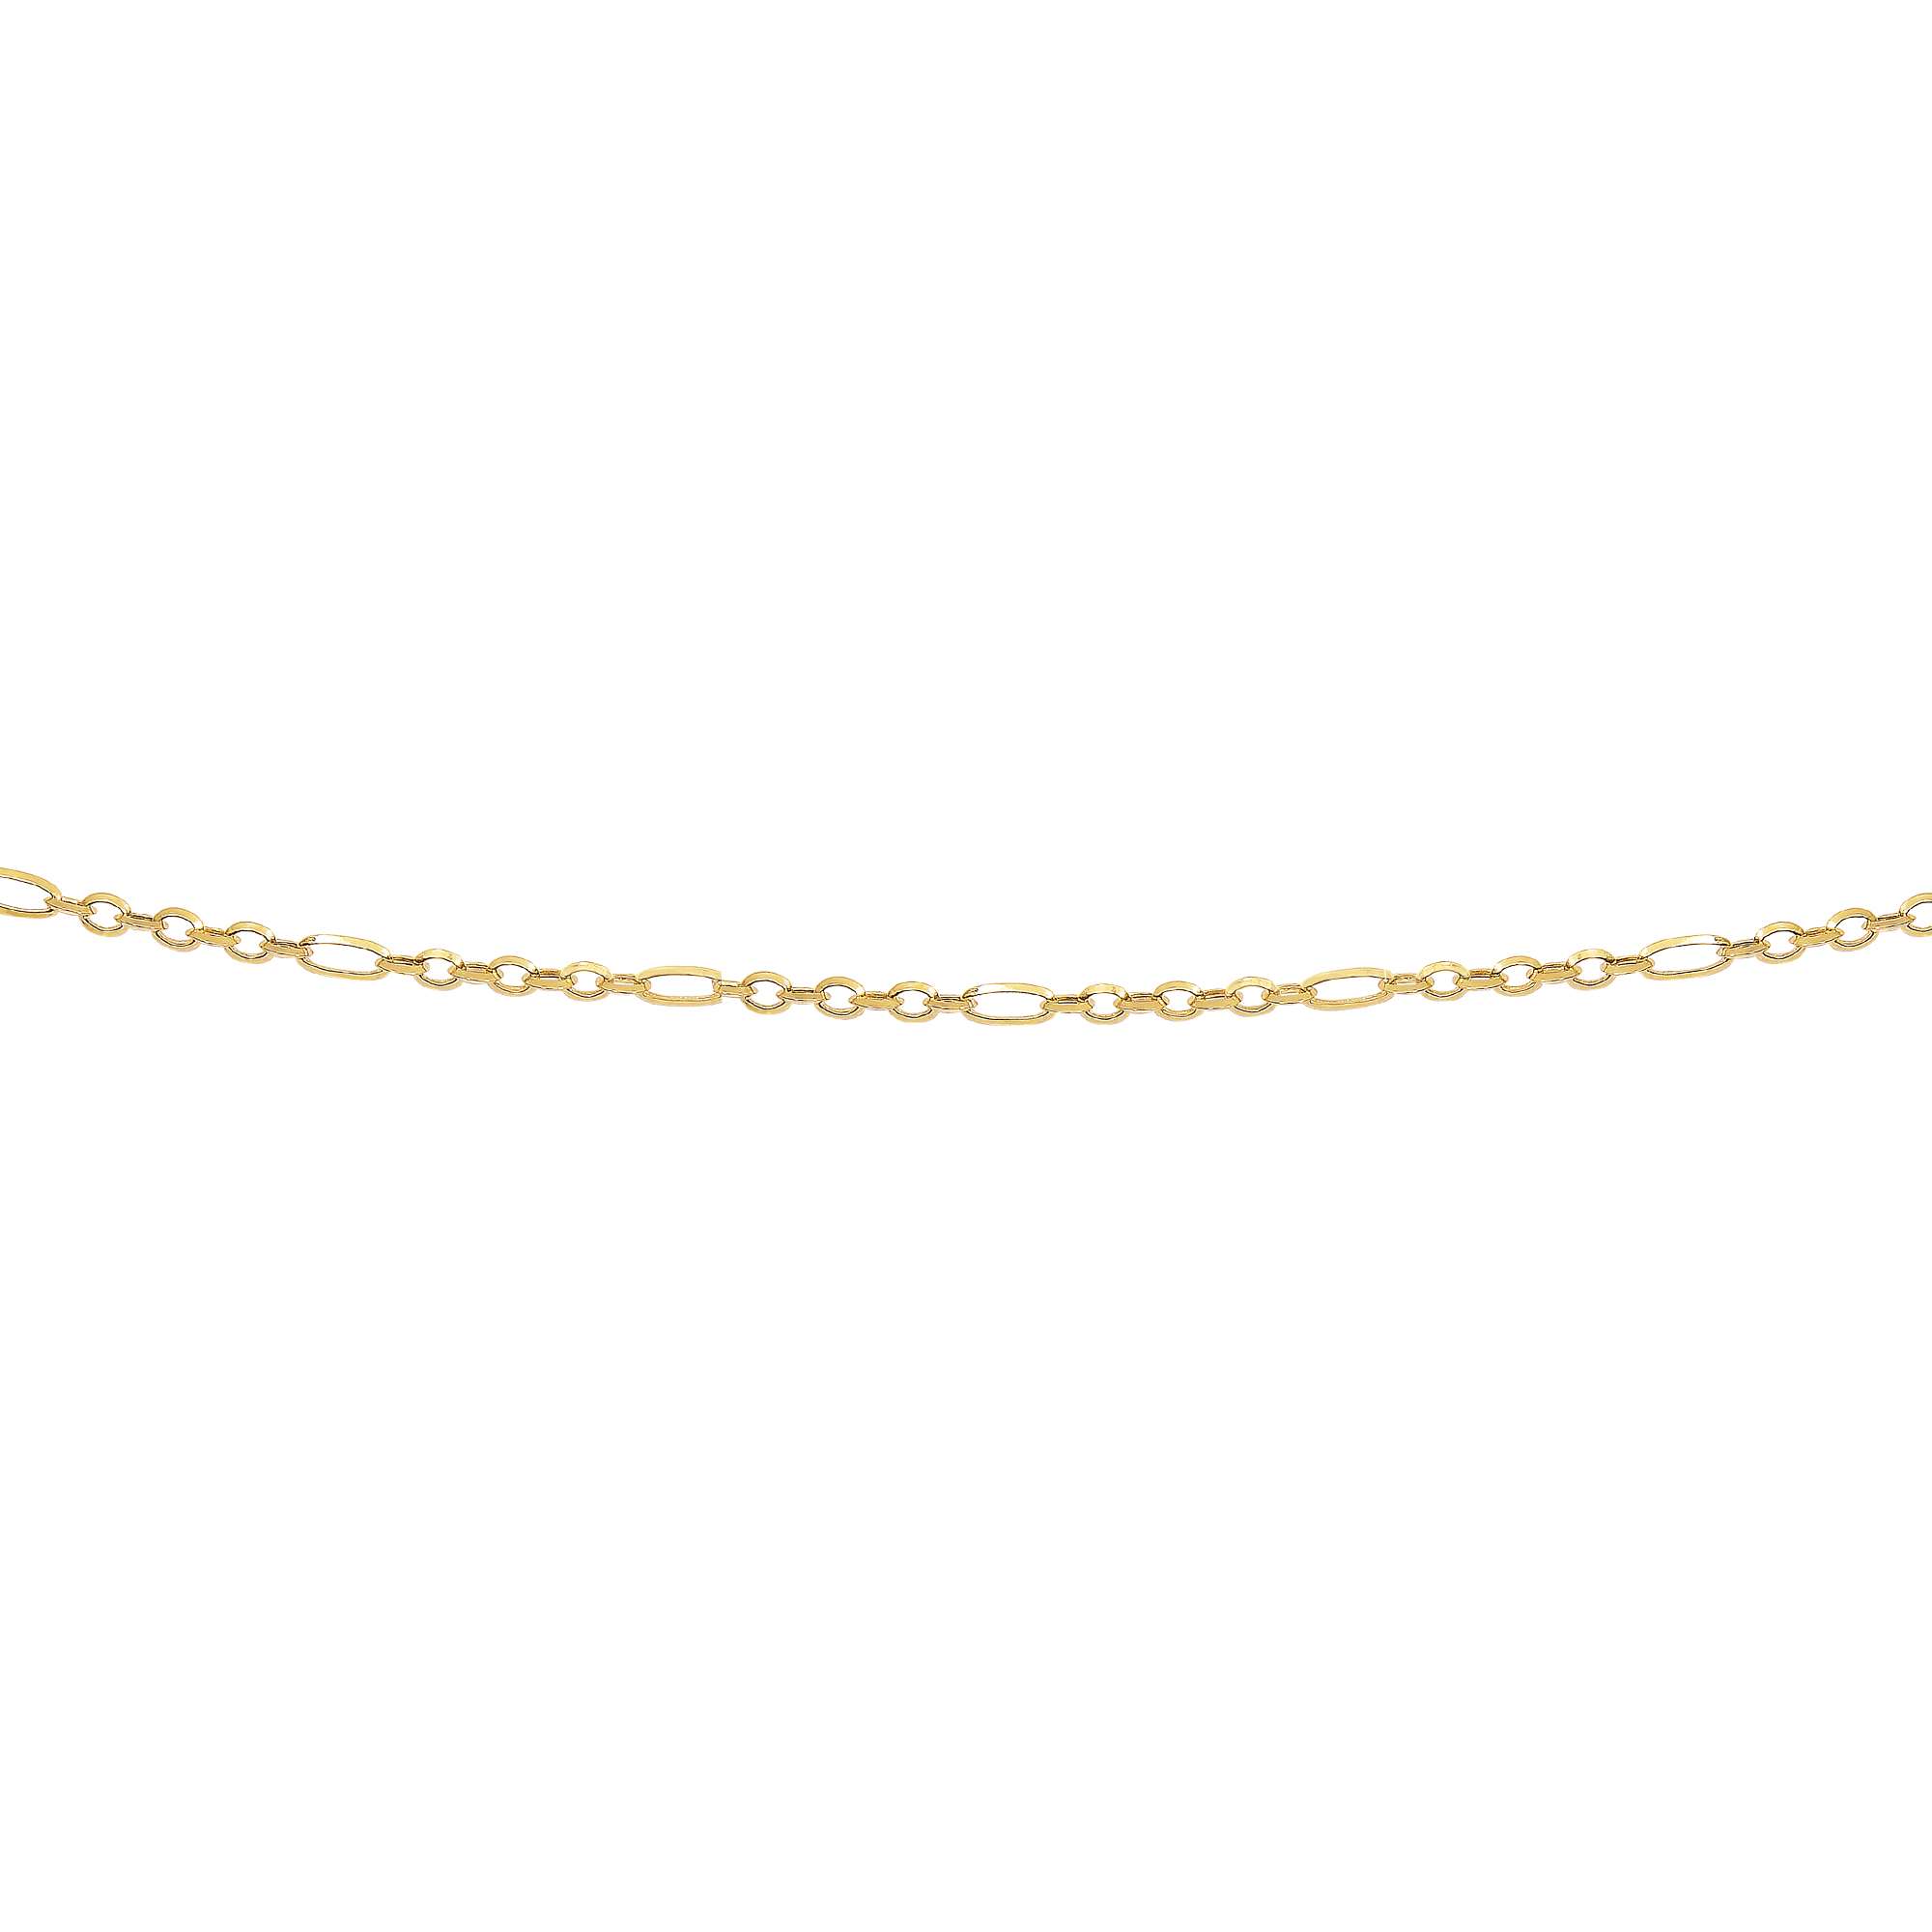 LUXURMAN Solid 14k Gold Rolo Chain For Women Polished Link 2.9mm Wide Yellow Image